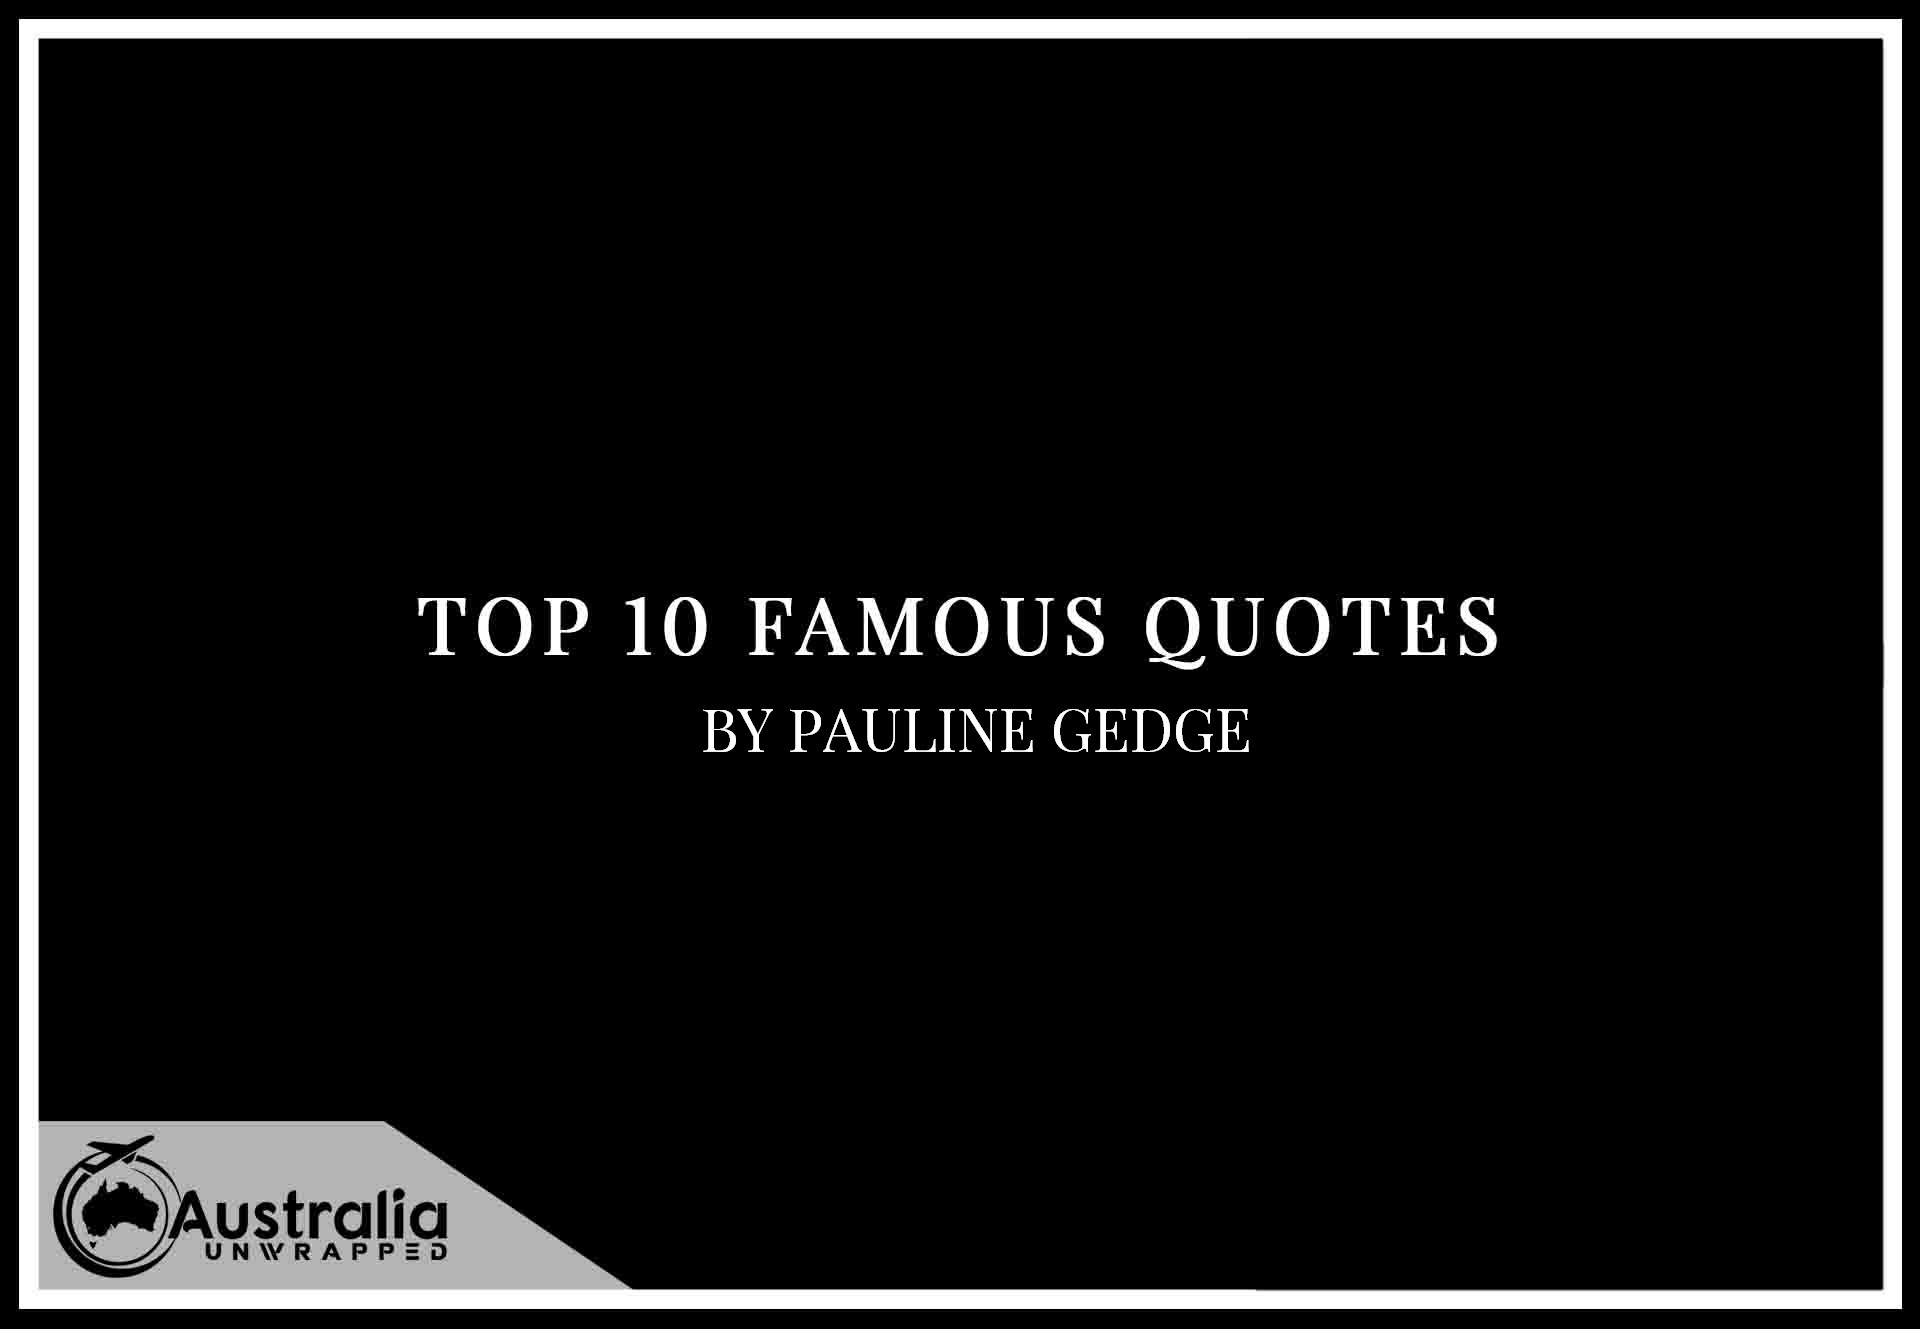 Top 10 Famous Quotes by Author Pauline Gedge